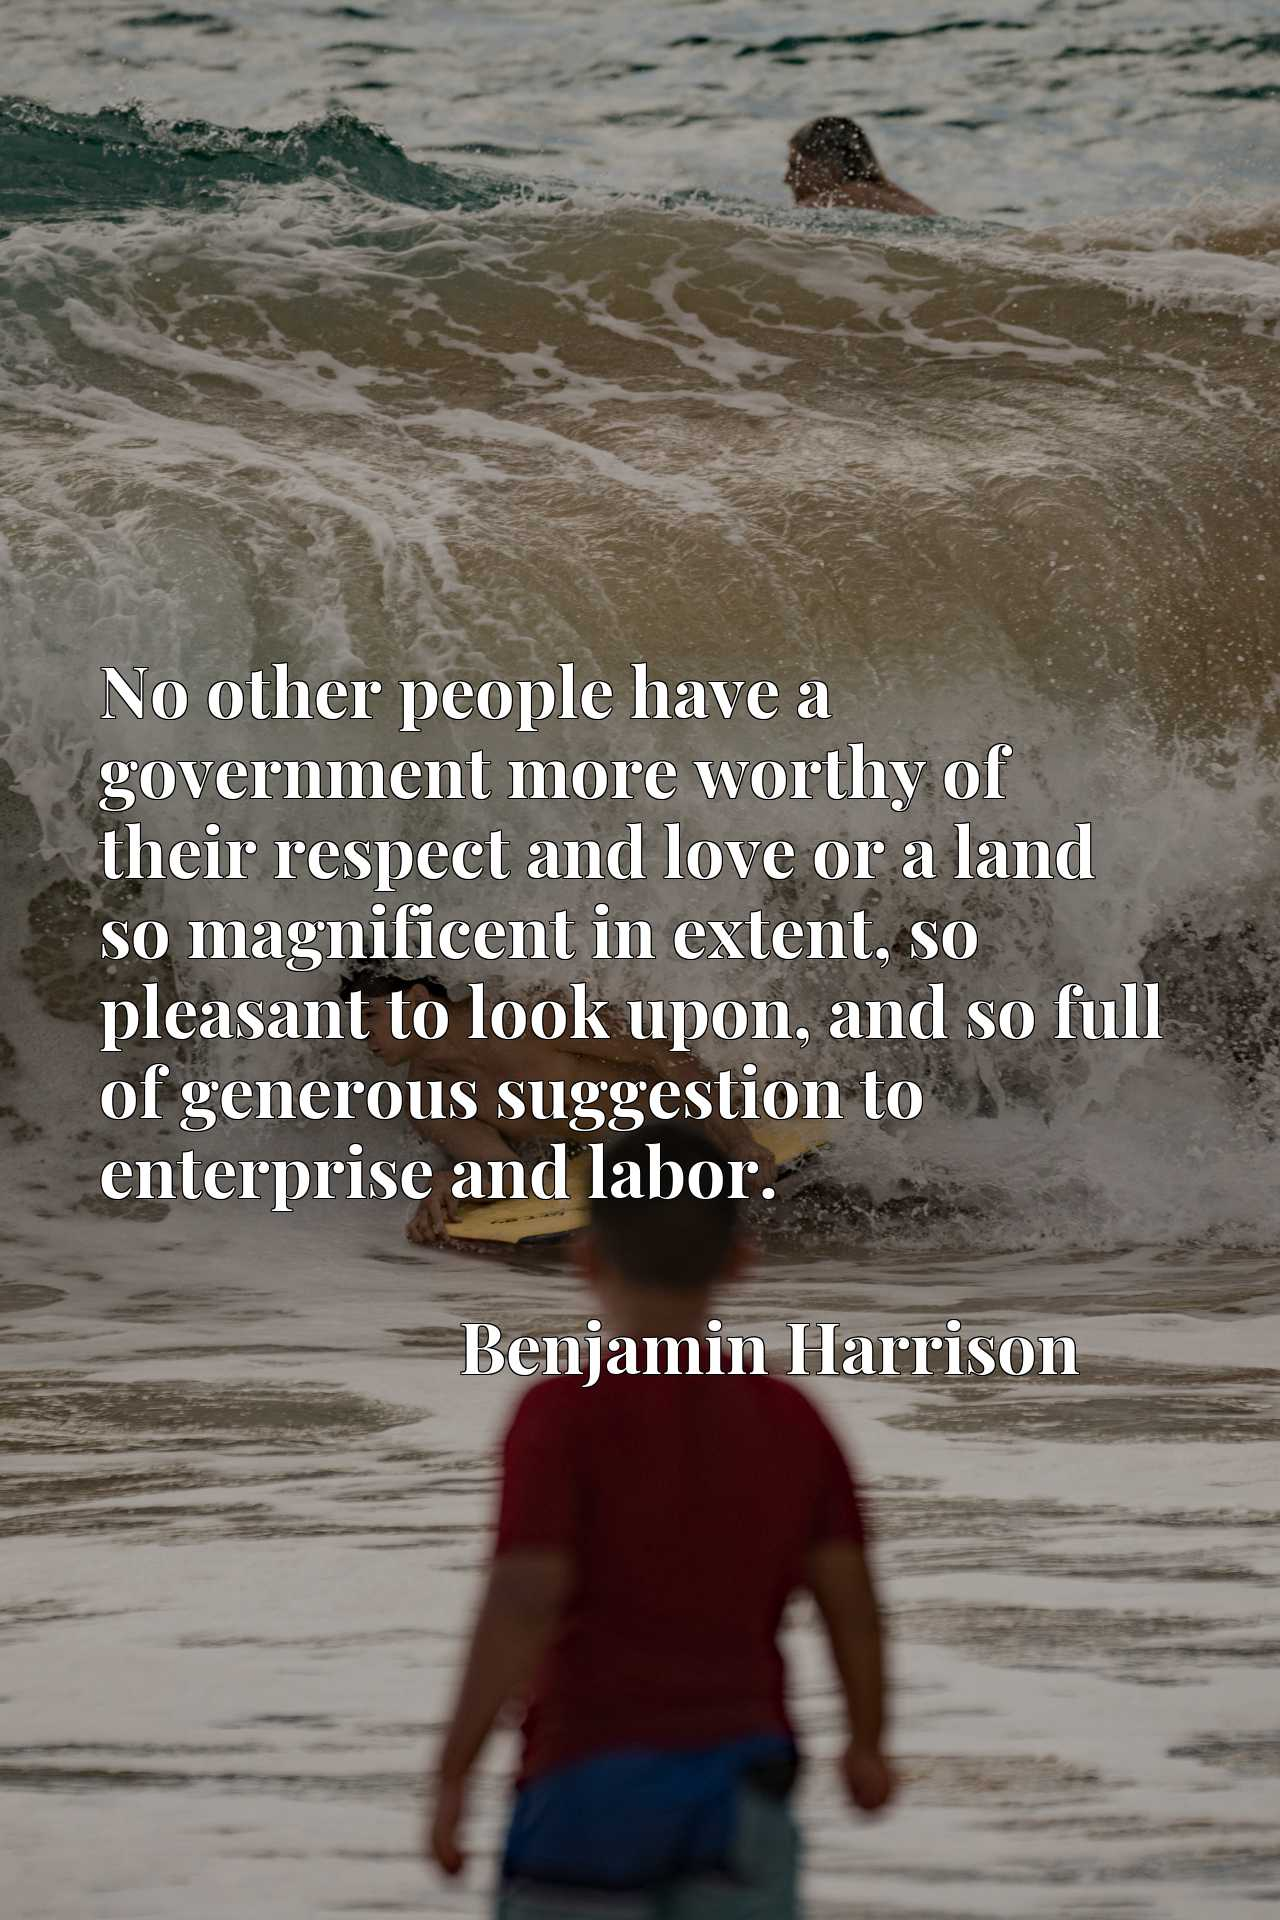 Quote Picture :No other people have a government more worthy of their respect and love or a land so magnificent in extent, so pleasant to look upon, and so full of generous suggestion to enterprise and labor.